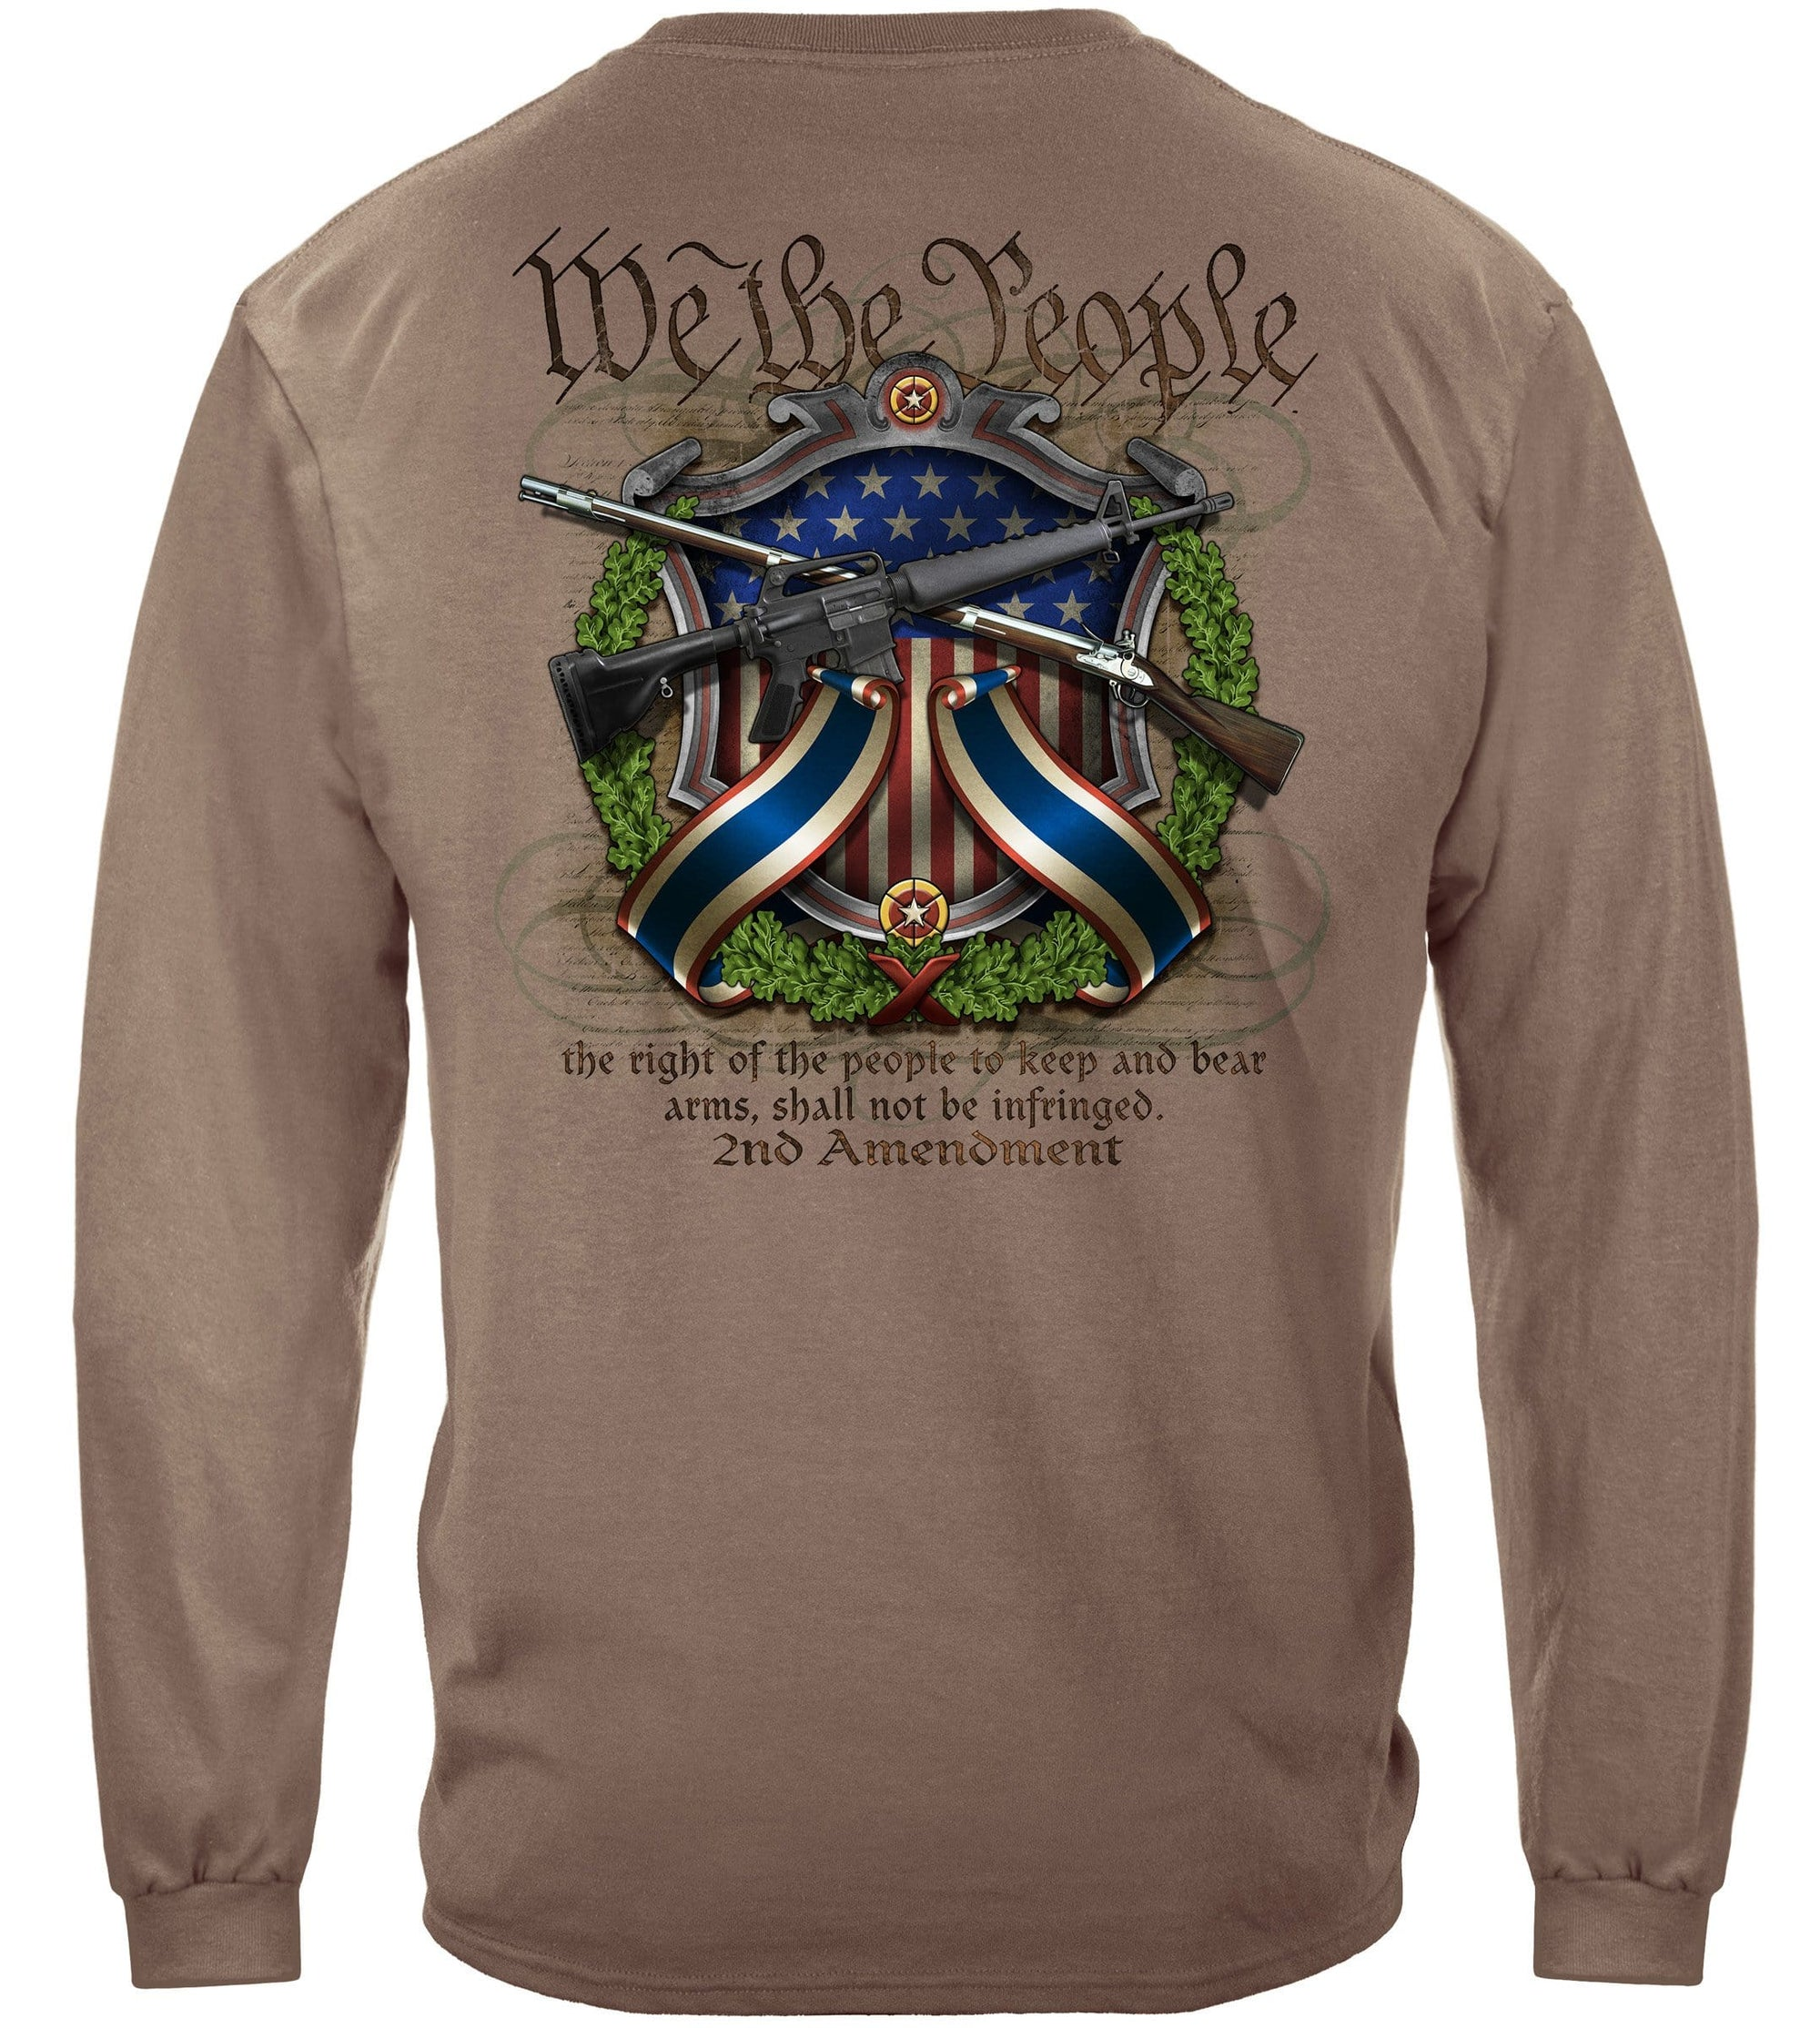 We The People 2nd Amendment Crossed Arms Premium Men's Long Sleeve